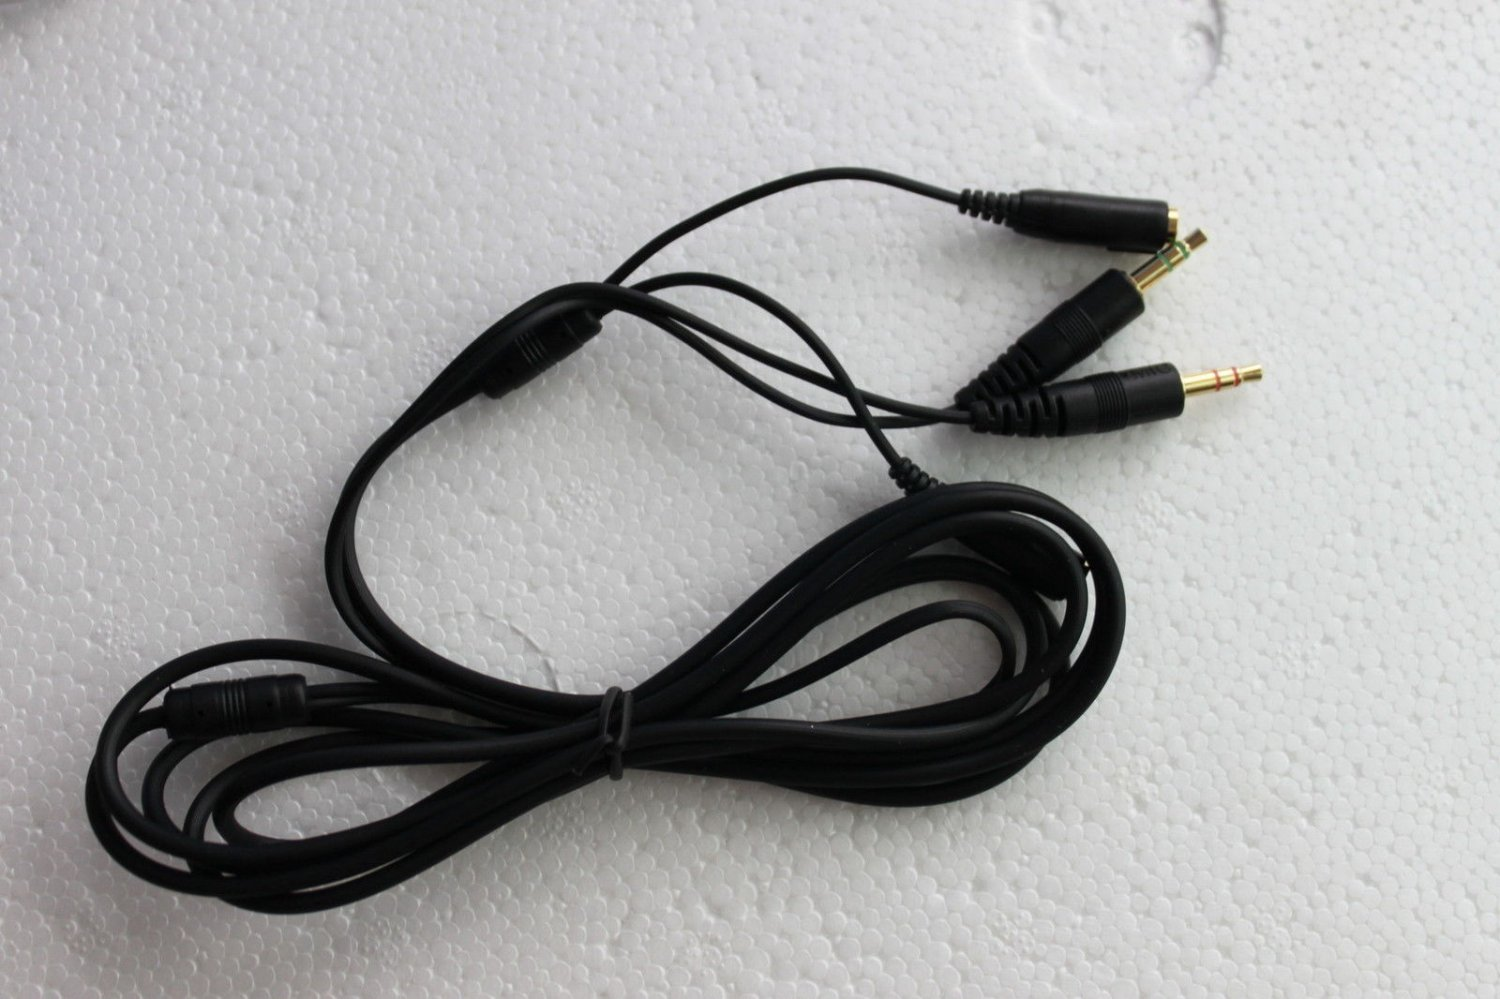 2M/6FT 3.5mm SteelSeries Siberia V2 Neckband Headset Extension Cable Black